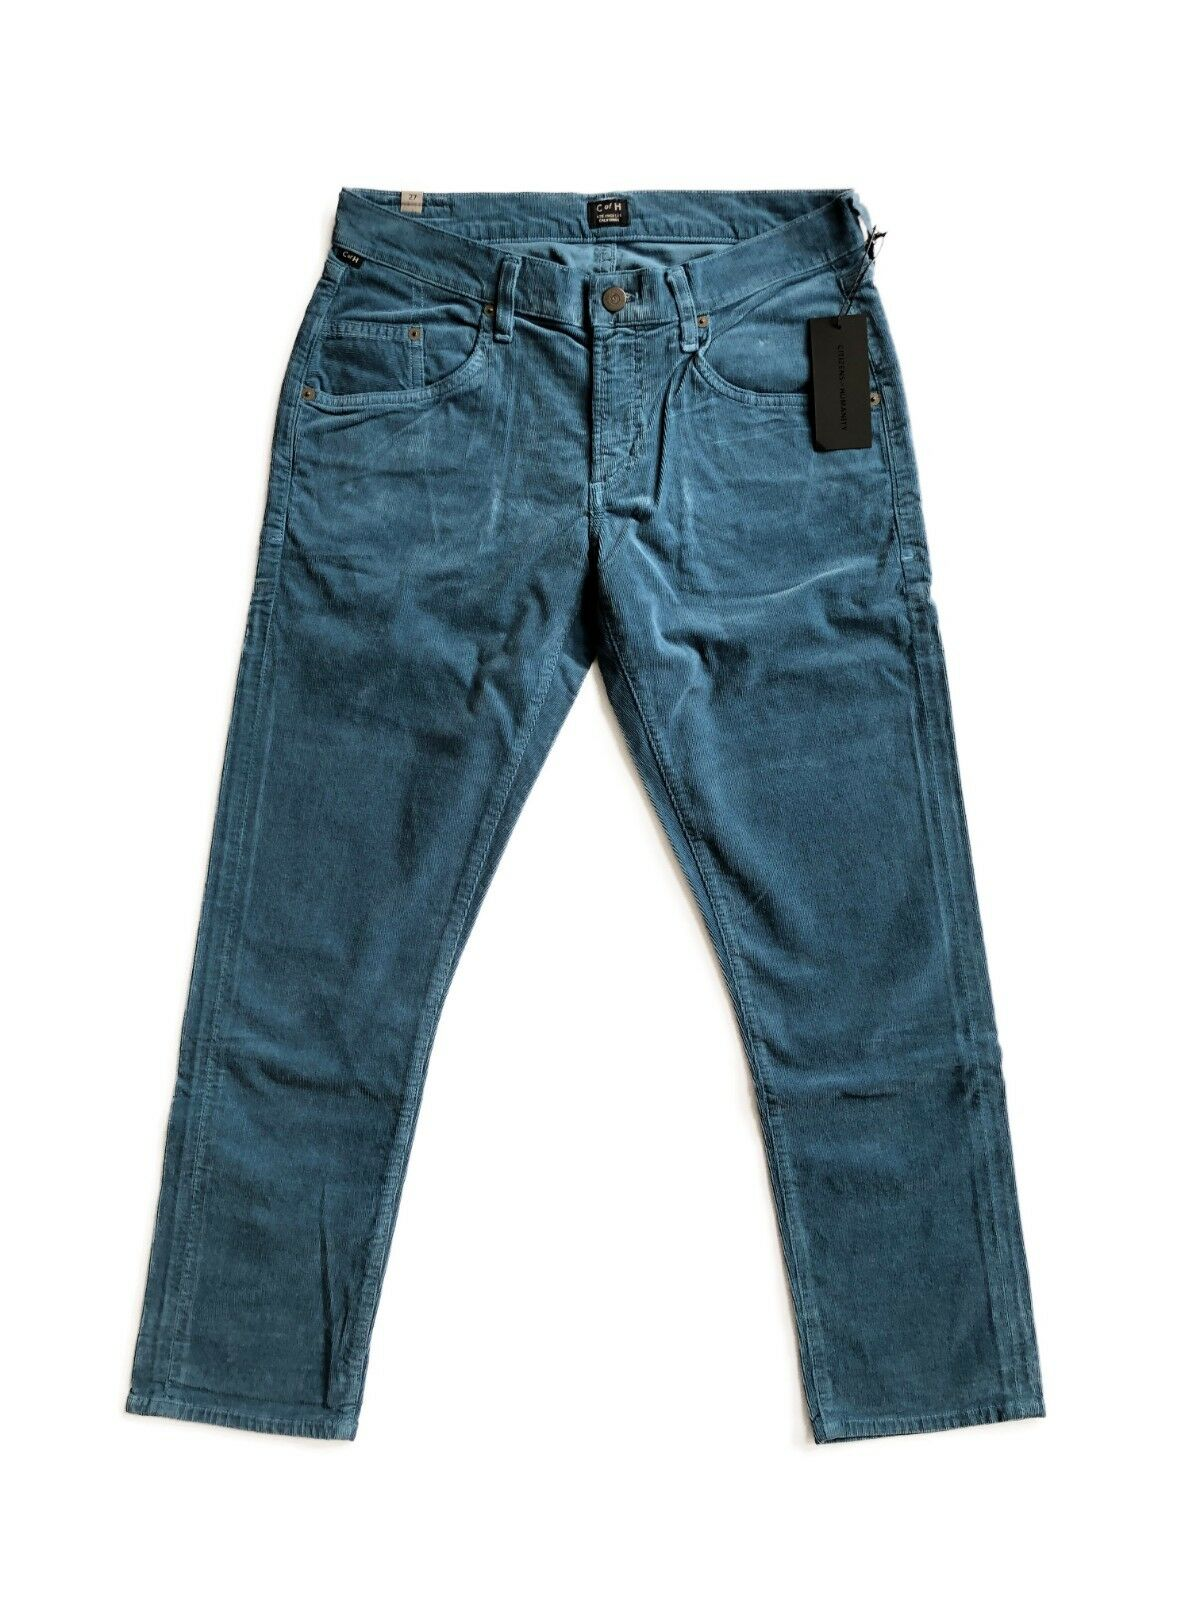 CITIZENS OF HUMANITY Lennox Crop DropRise Loose Fit Corduroy Pants bluee  198